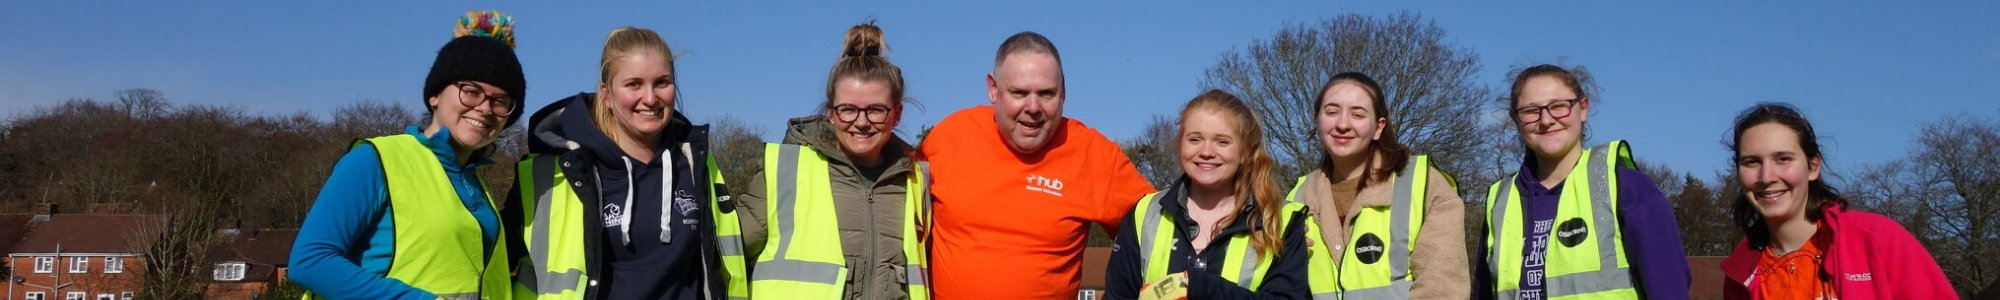 A group of Winchester Hub volunteers in yellow vests are smiling at the camera. In the centre is a councilman in an orange Winchester Hub shirt.